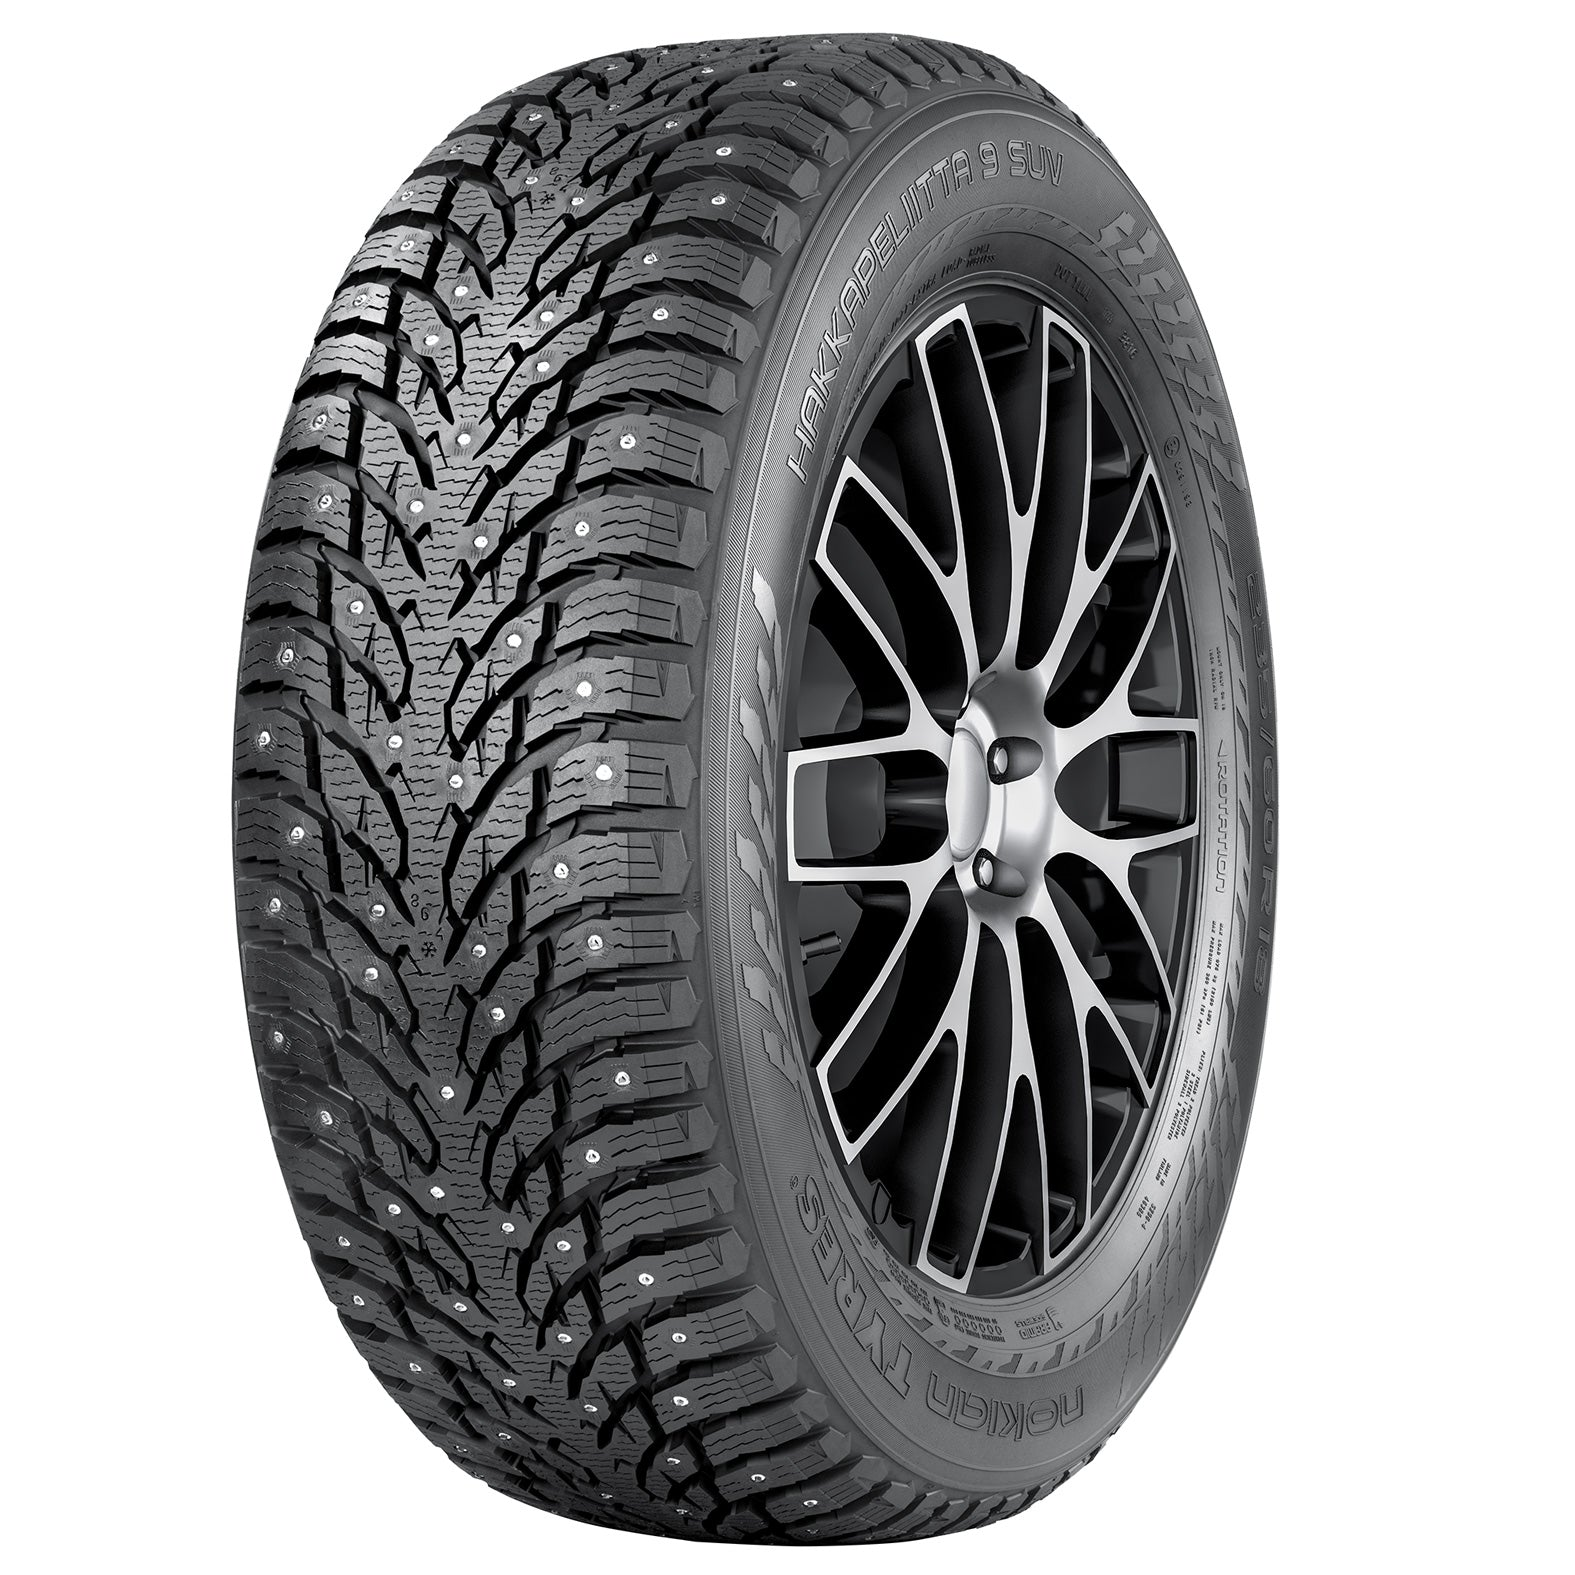 235/45R18 Nokian Hakkapeliitta 9 Studded Tires 98T XL for Tesla Model 3NokianEV Tuning